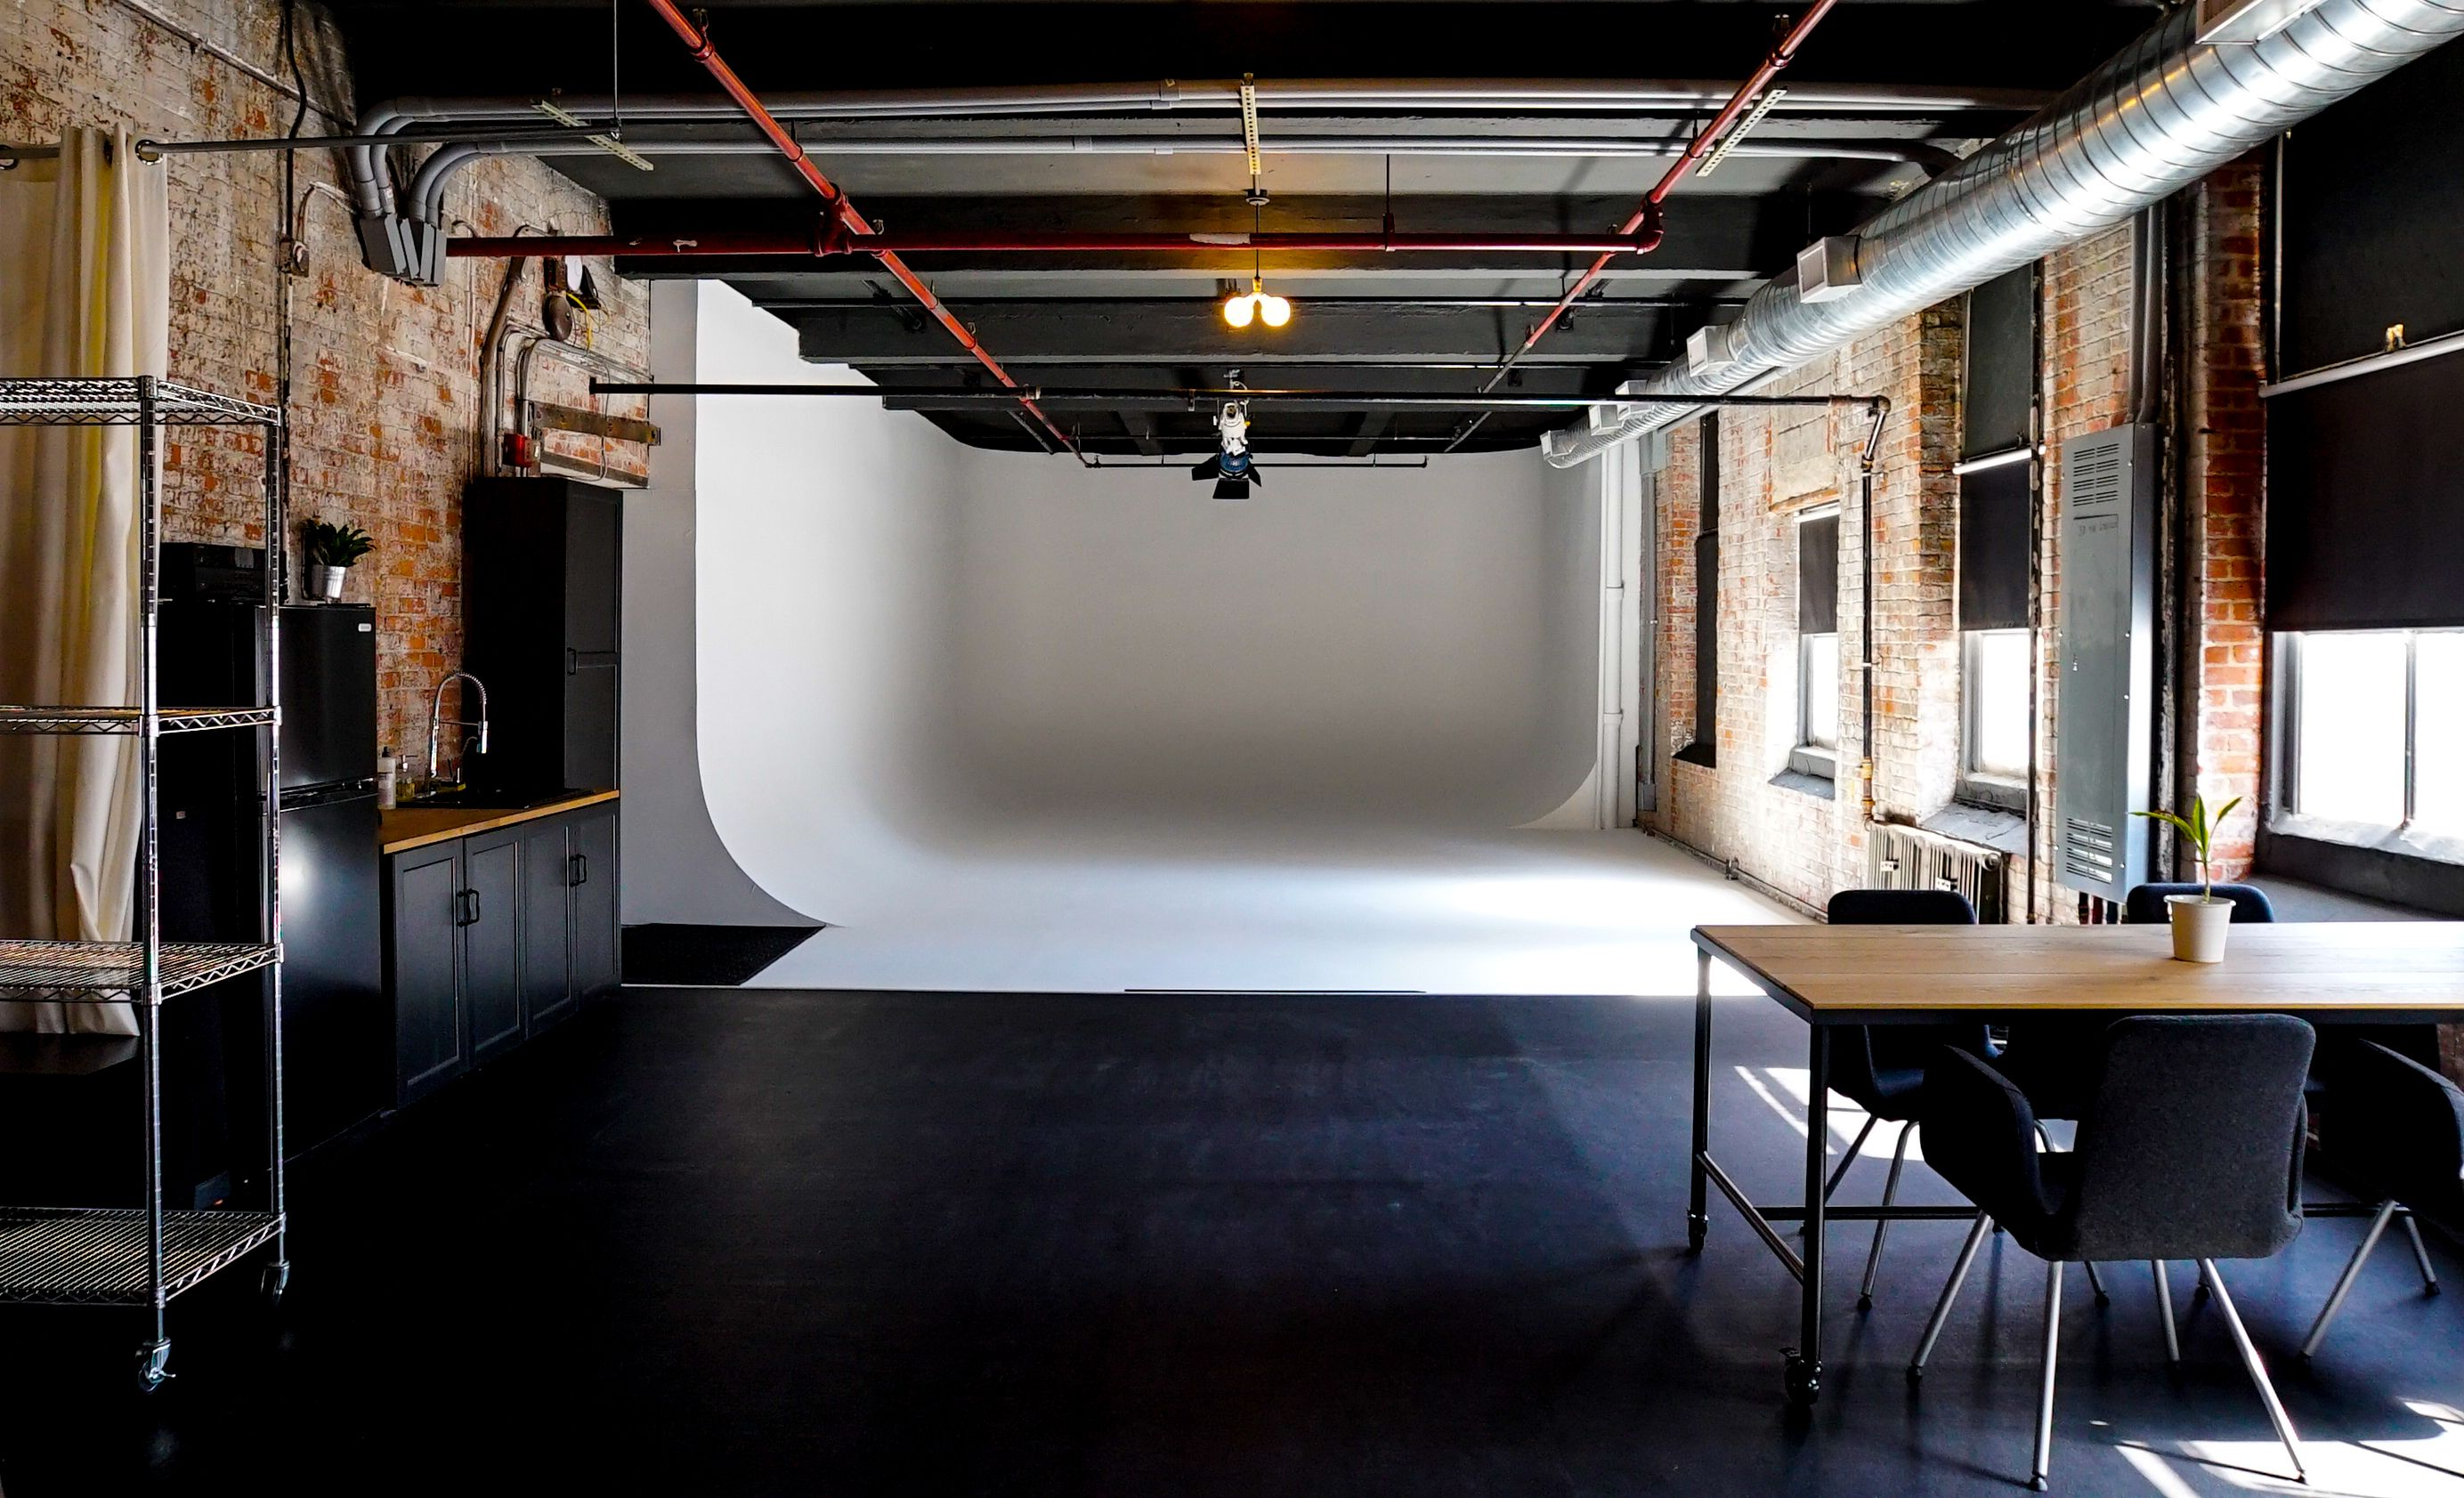 Check Out This Great Production Space On Peerspace Com Huge 3 Wall Cyc Studio Perfect For Photo Video In Coworking Space Design Studio Space Space Design